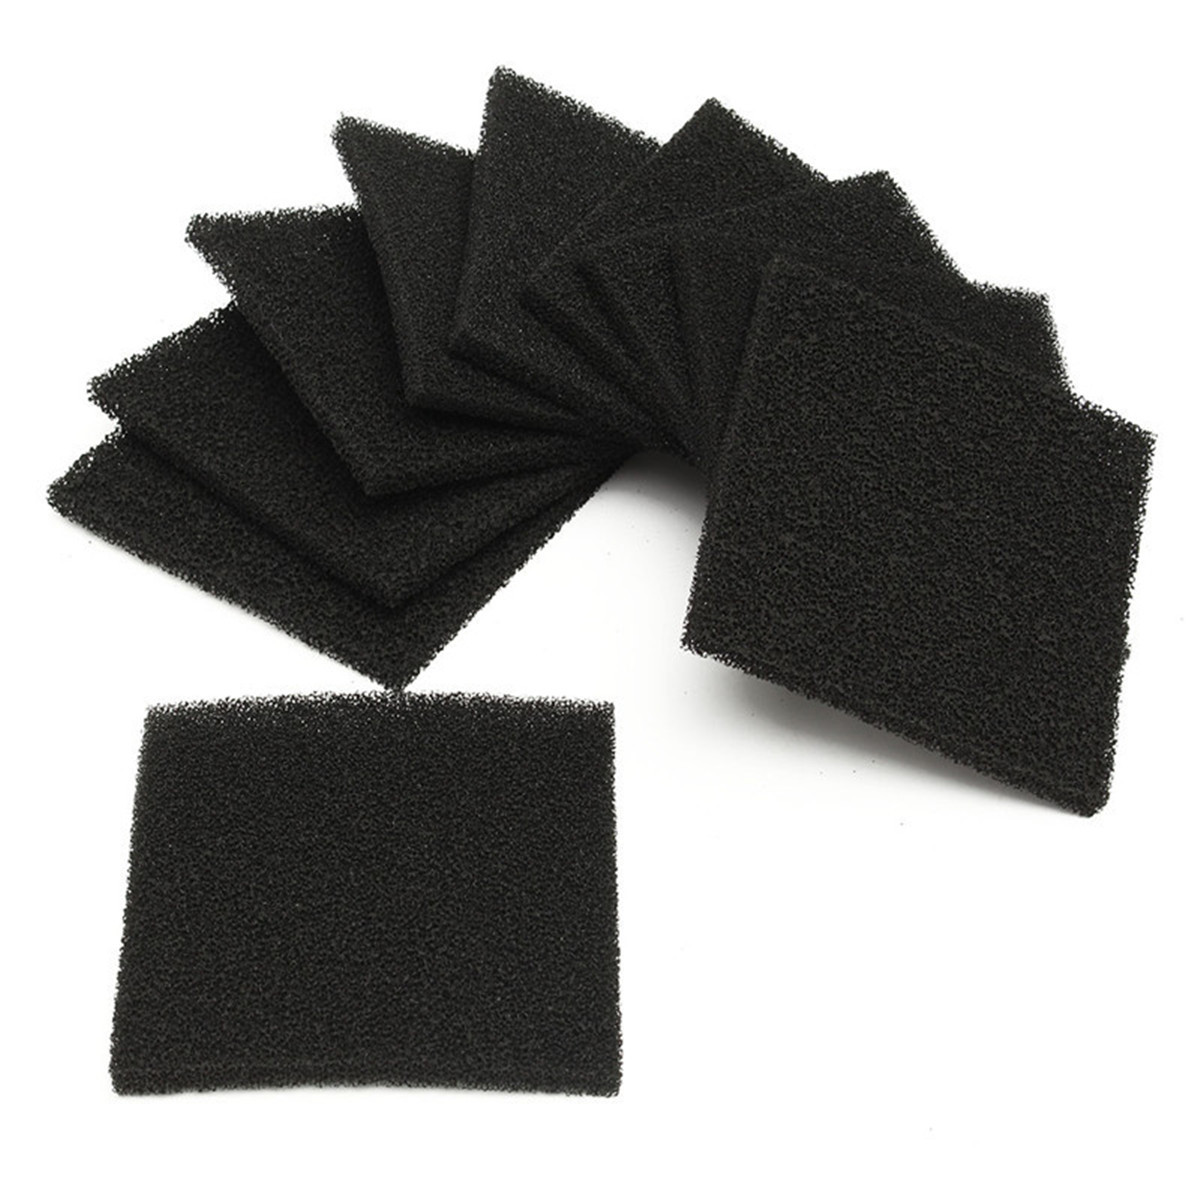 10Pcs Activated Carbon Filter Sponge For 493 Soldering Smoke Absorber ESD Fume Extractor Solder Iron Welding Tool Kits 128x128mm